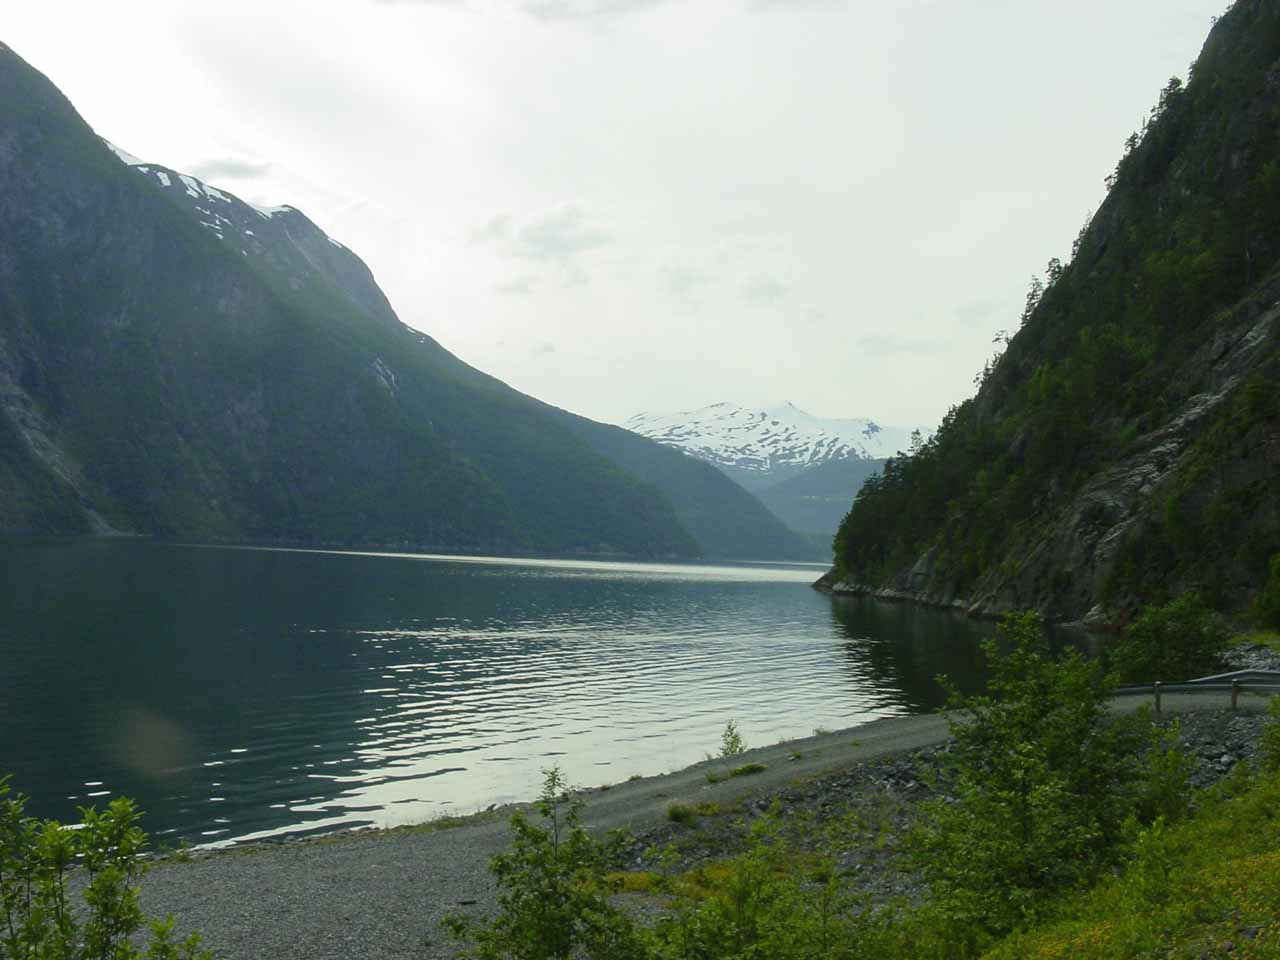 At the shores of Tafjorden as I was about to start the hike for Muldalsfossen